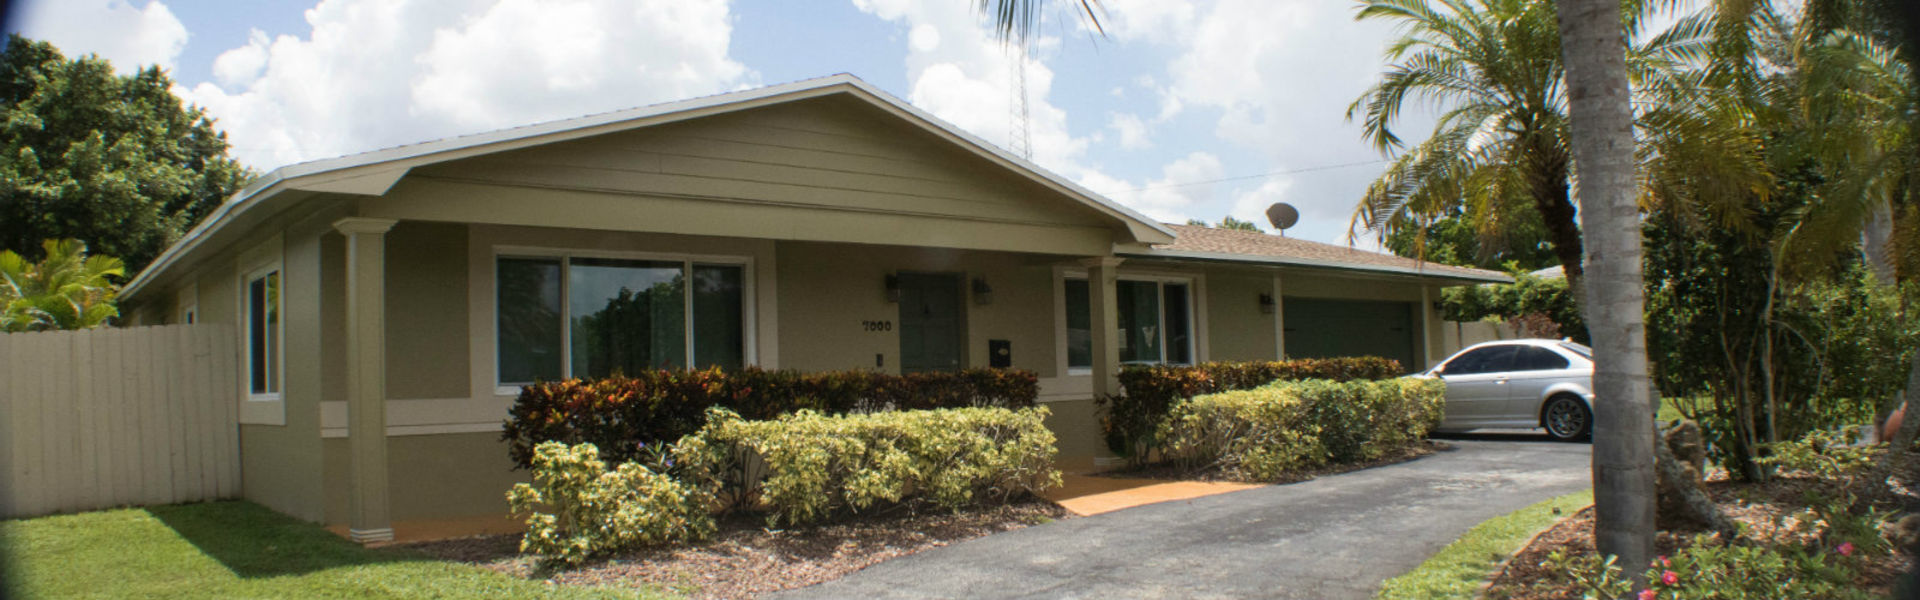 For Sale this beautiful 1-story home in the heart of Plantation FL